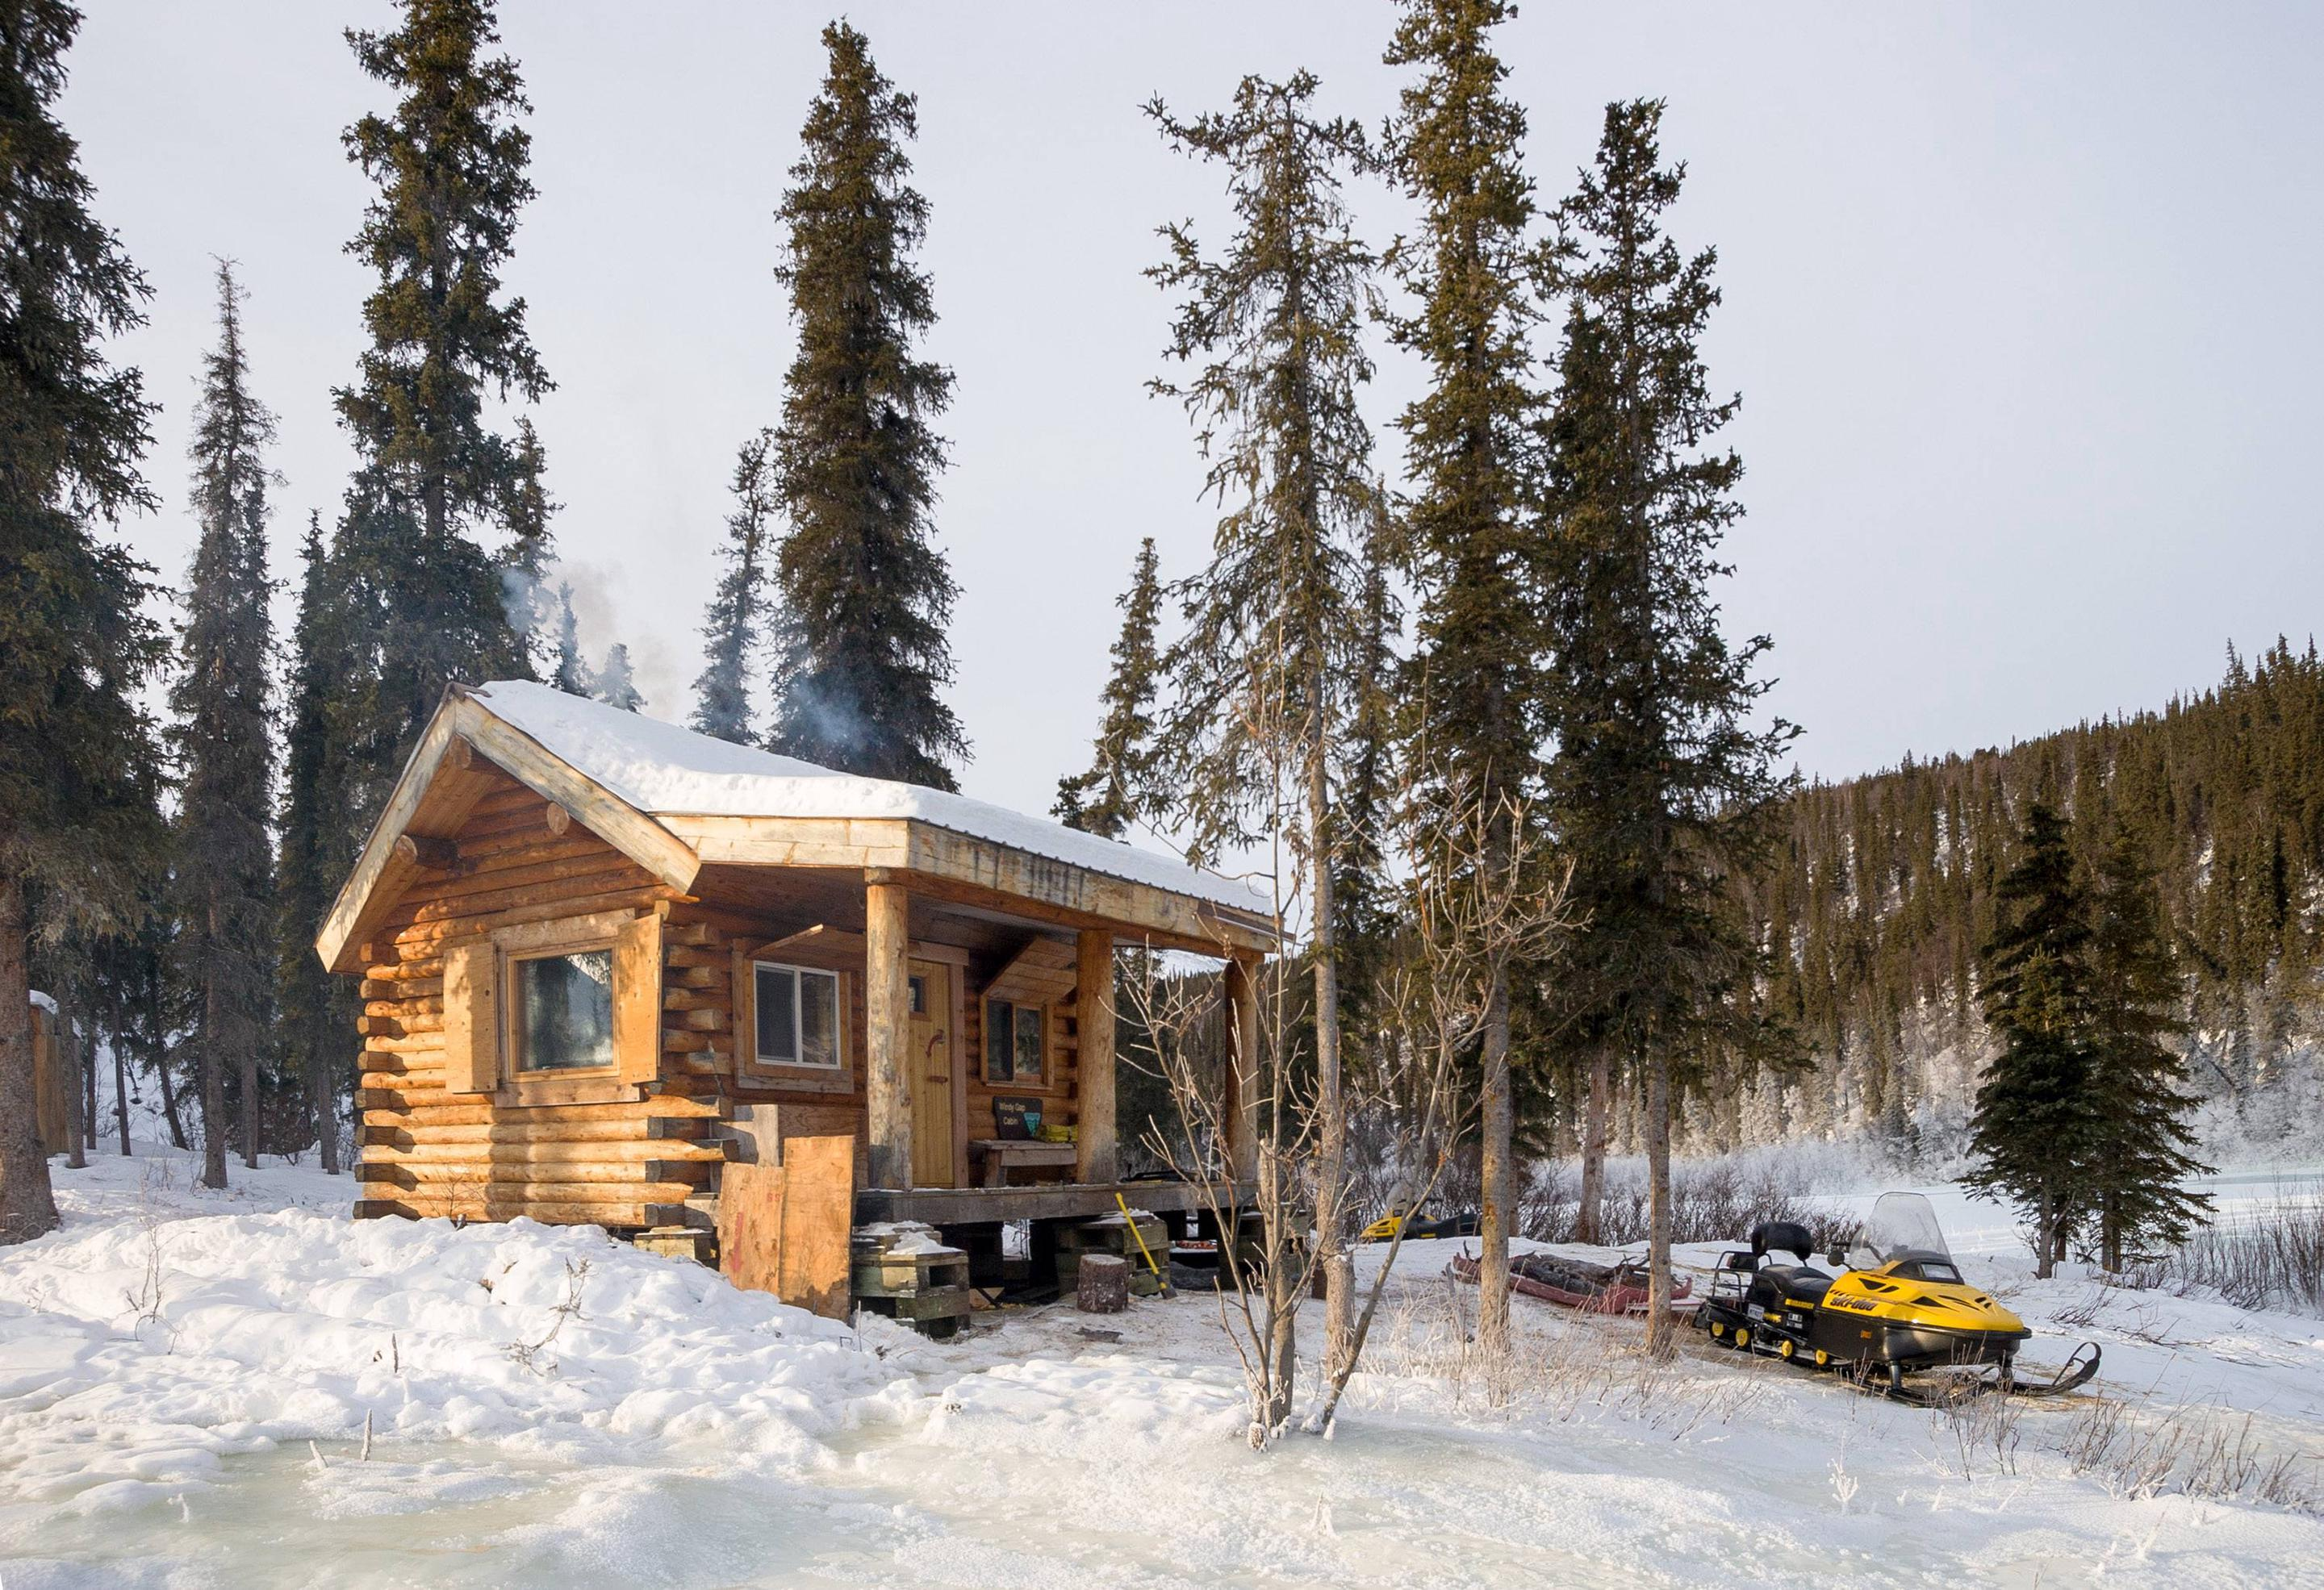 A cabin with a yellow snowmobile parked in frontWindy Gap cabin sits on a knoll above Fossil Creek.